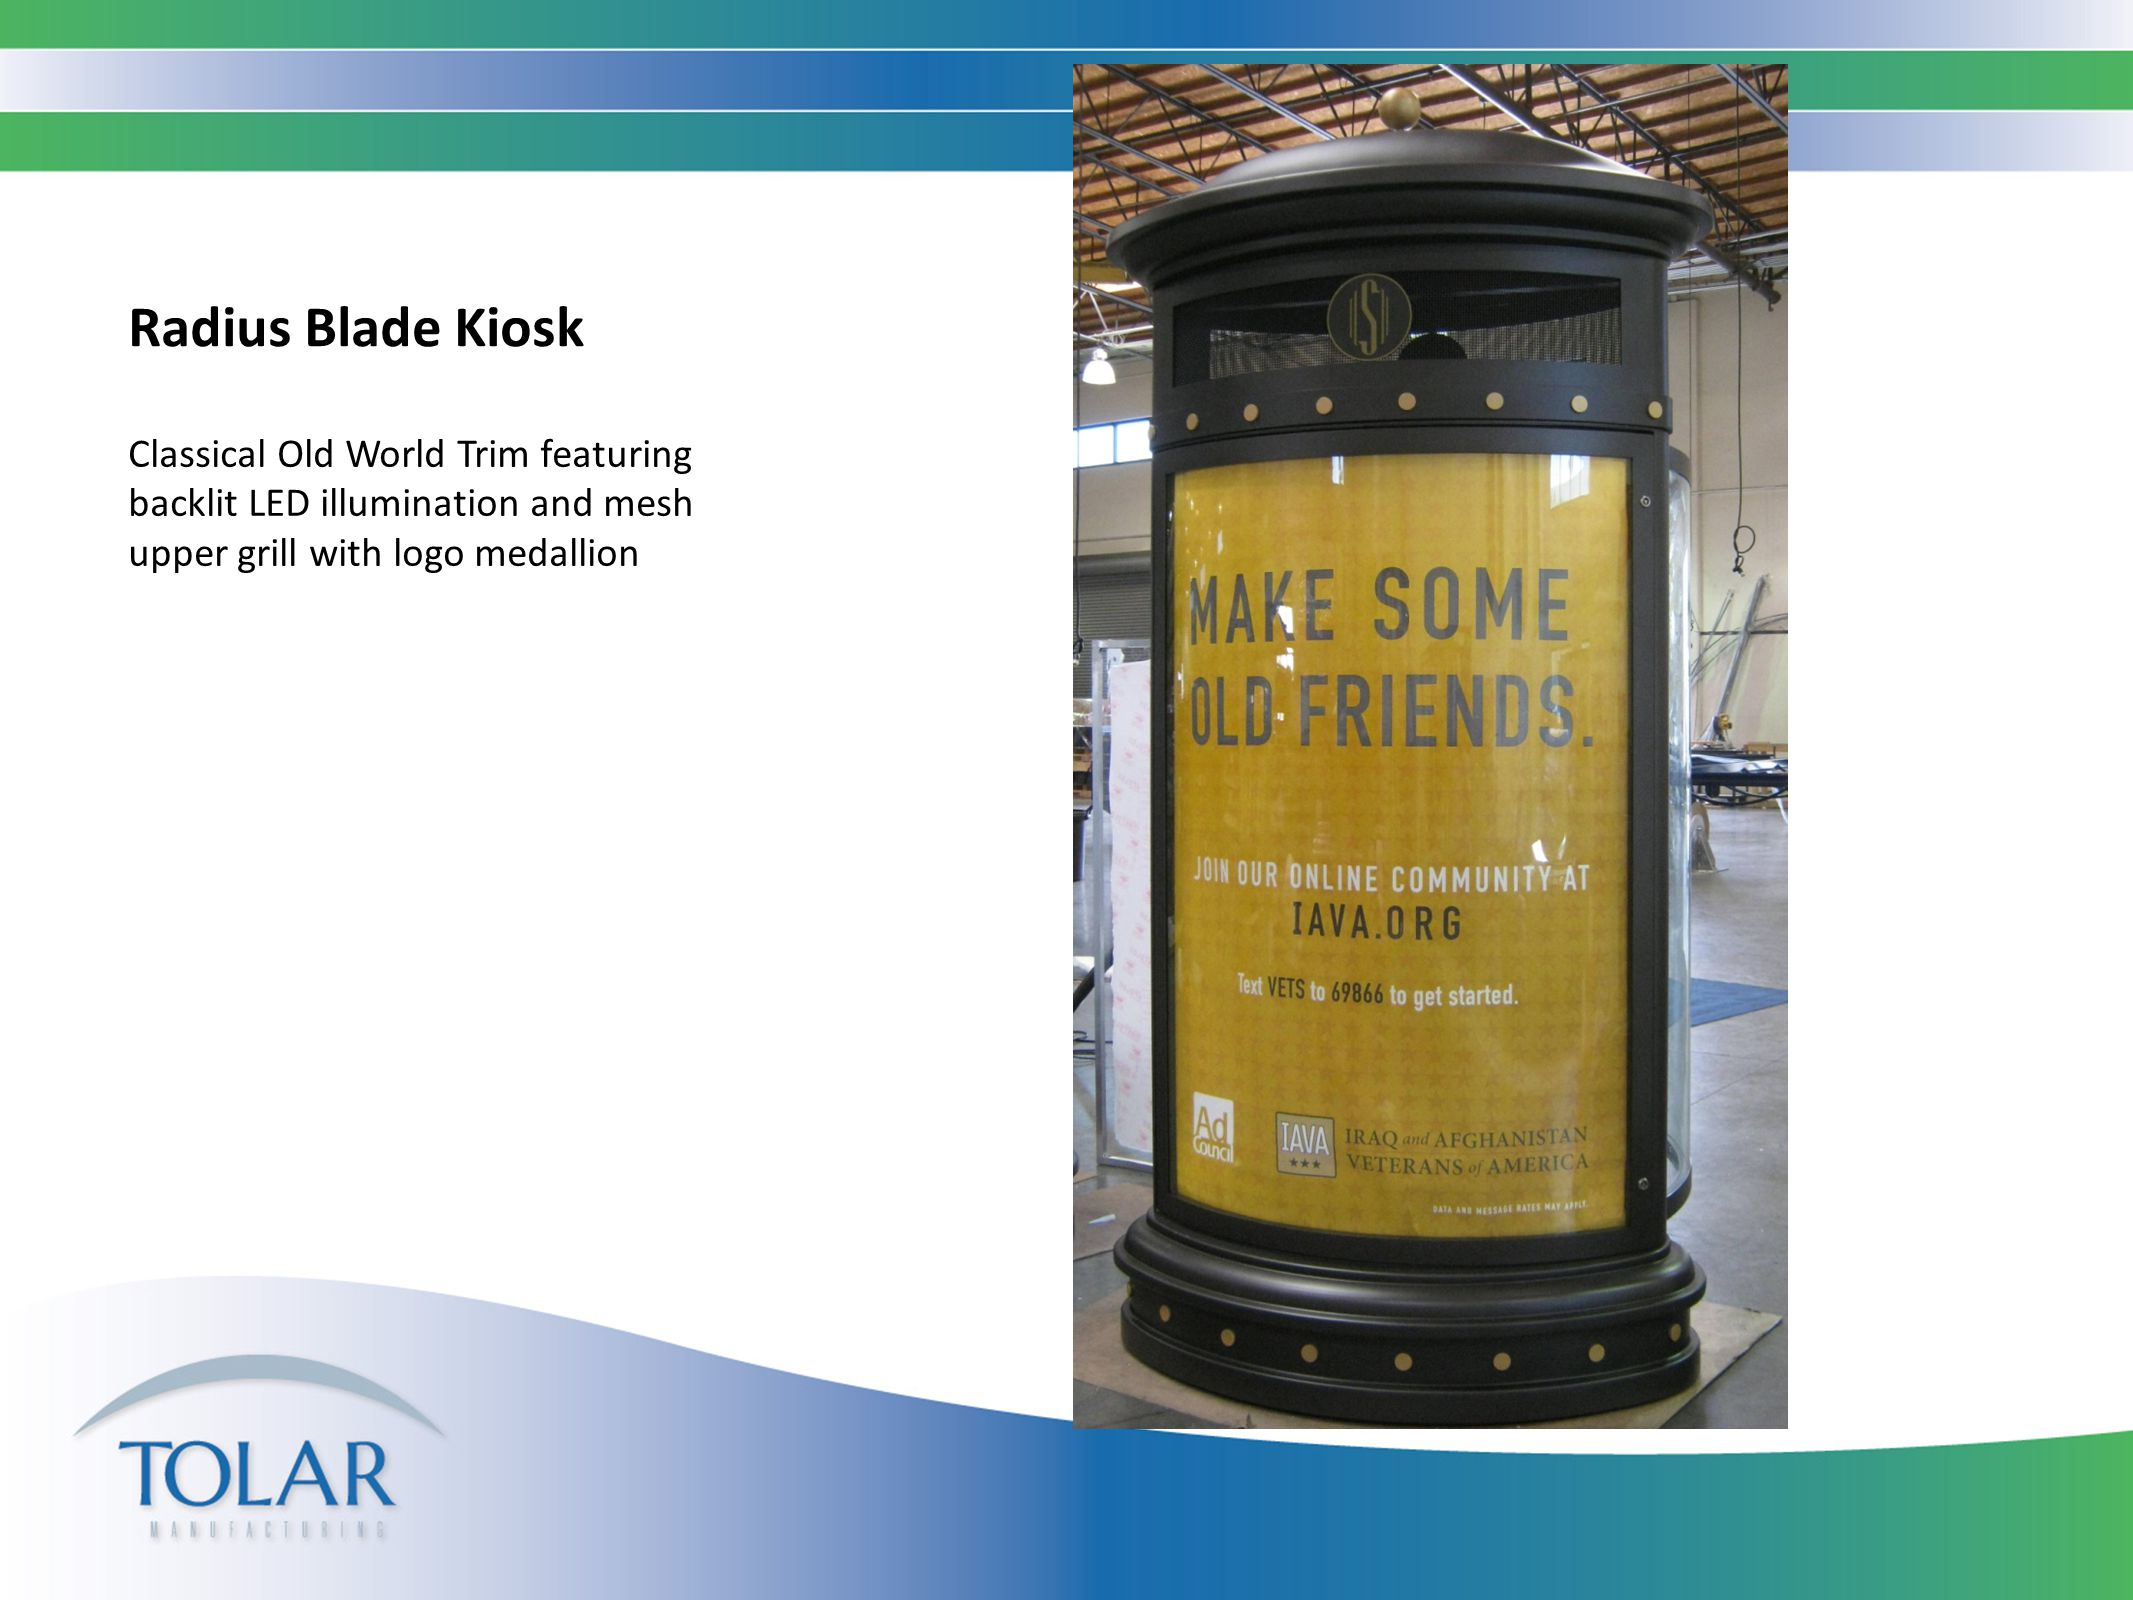 Radius Blade Kiosk Classical Old World Trim featuring backlit LED illumination and mesh upper grill with logo medallion